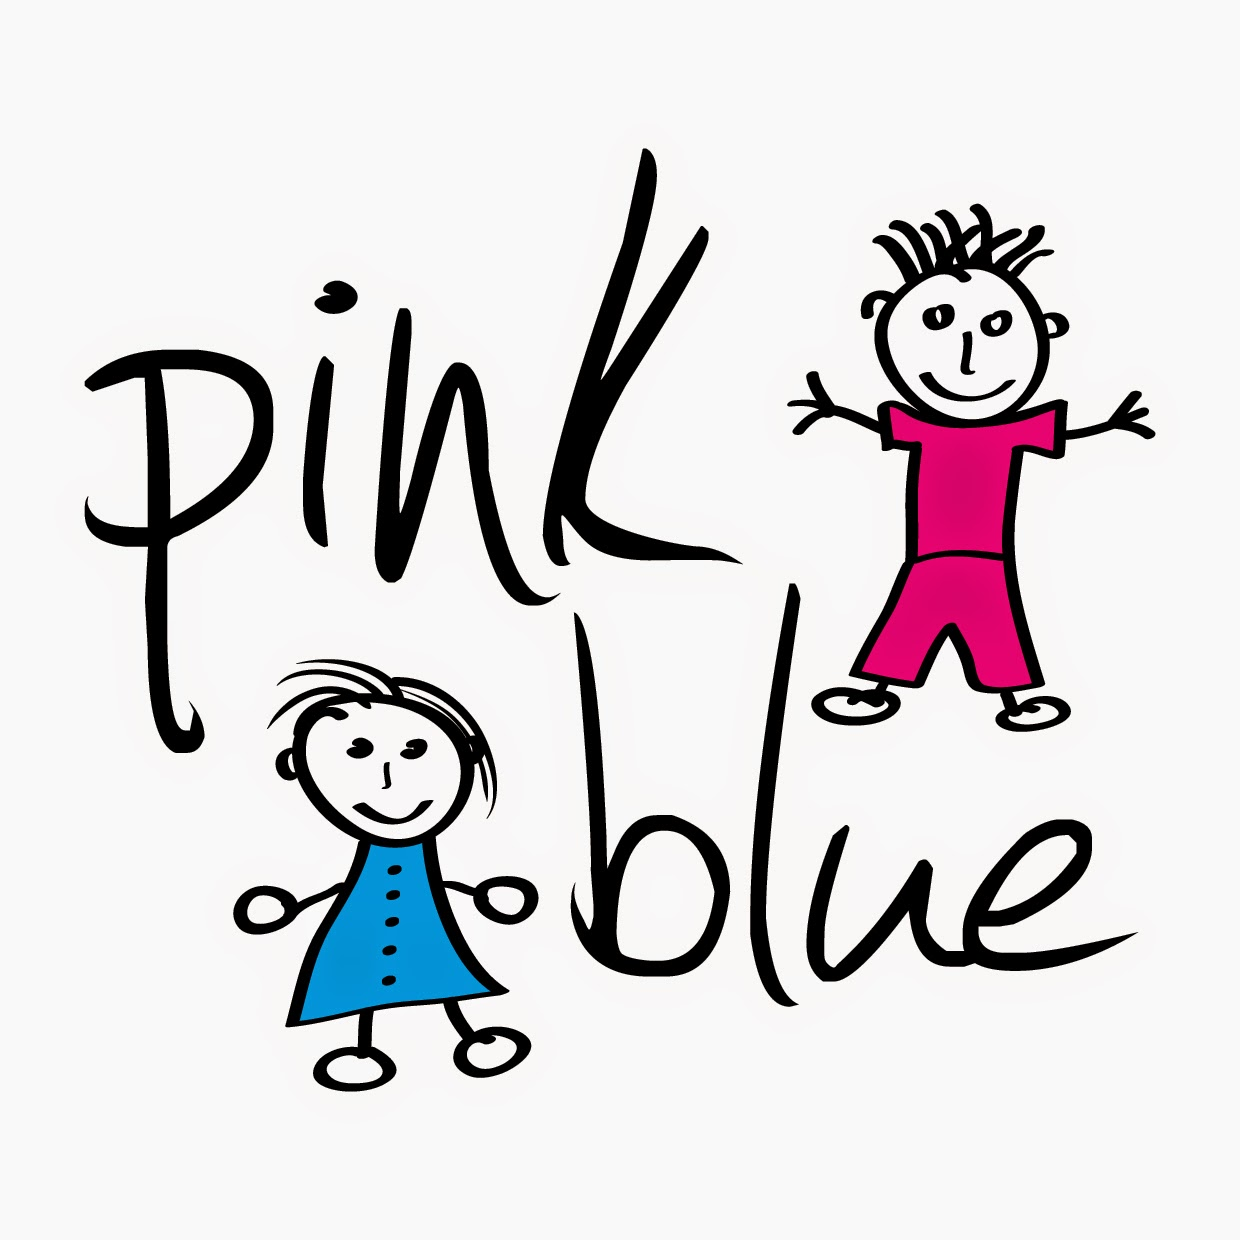 http://www.pinkblue.pl/